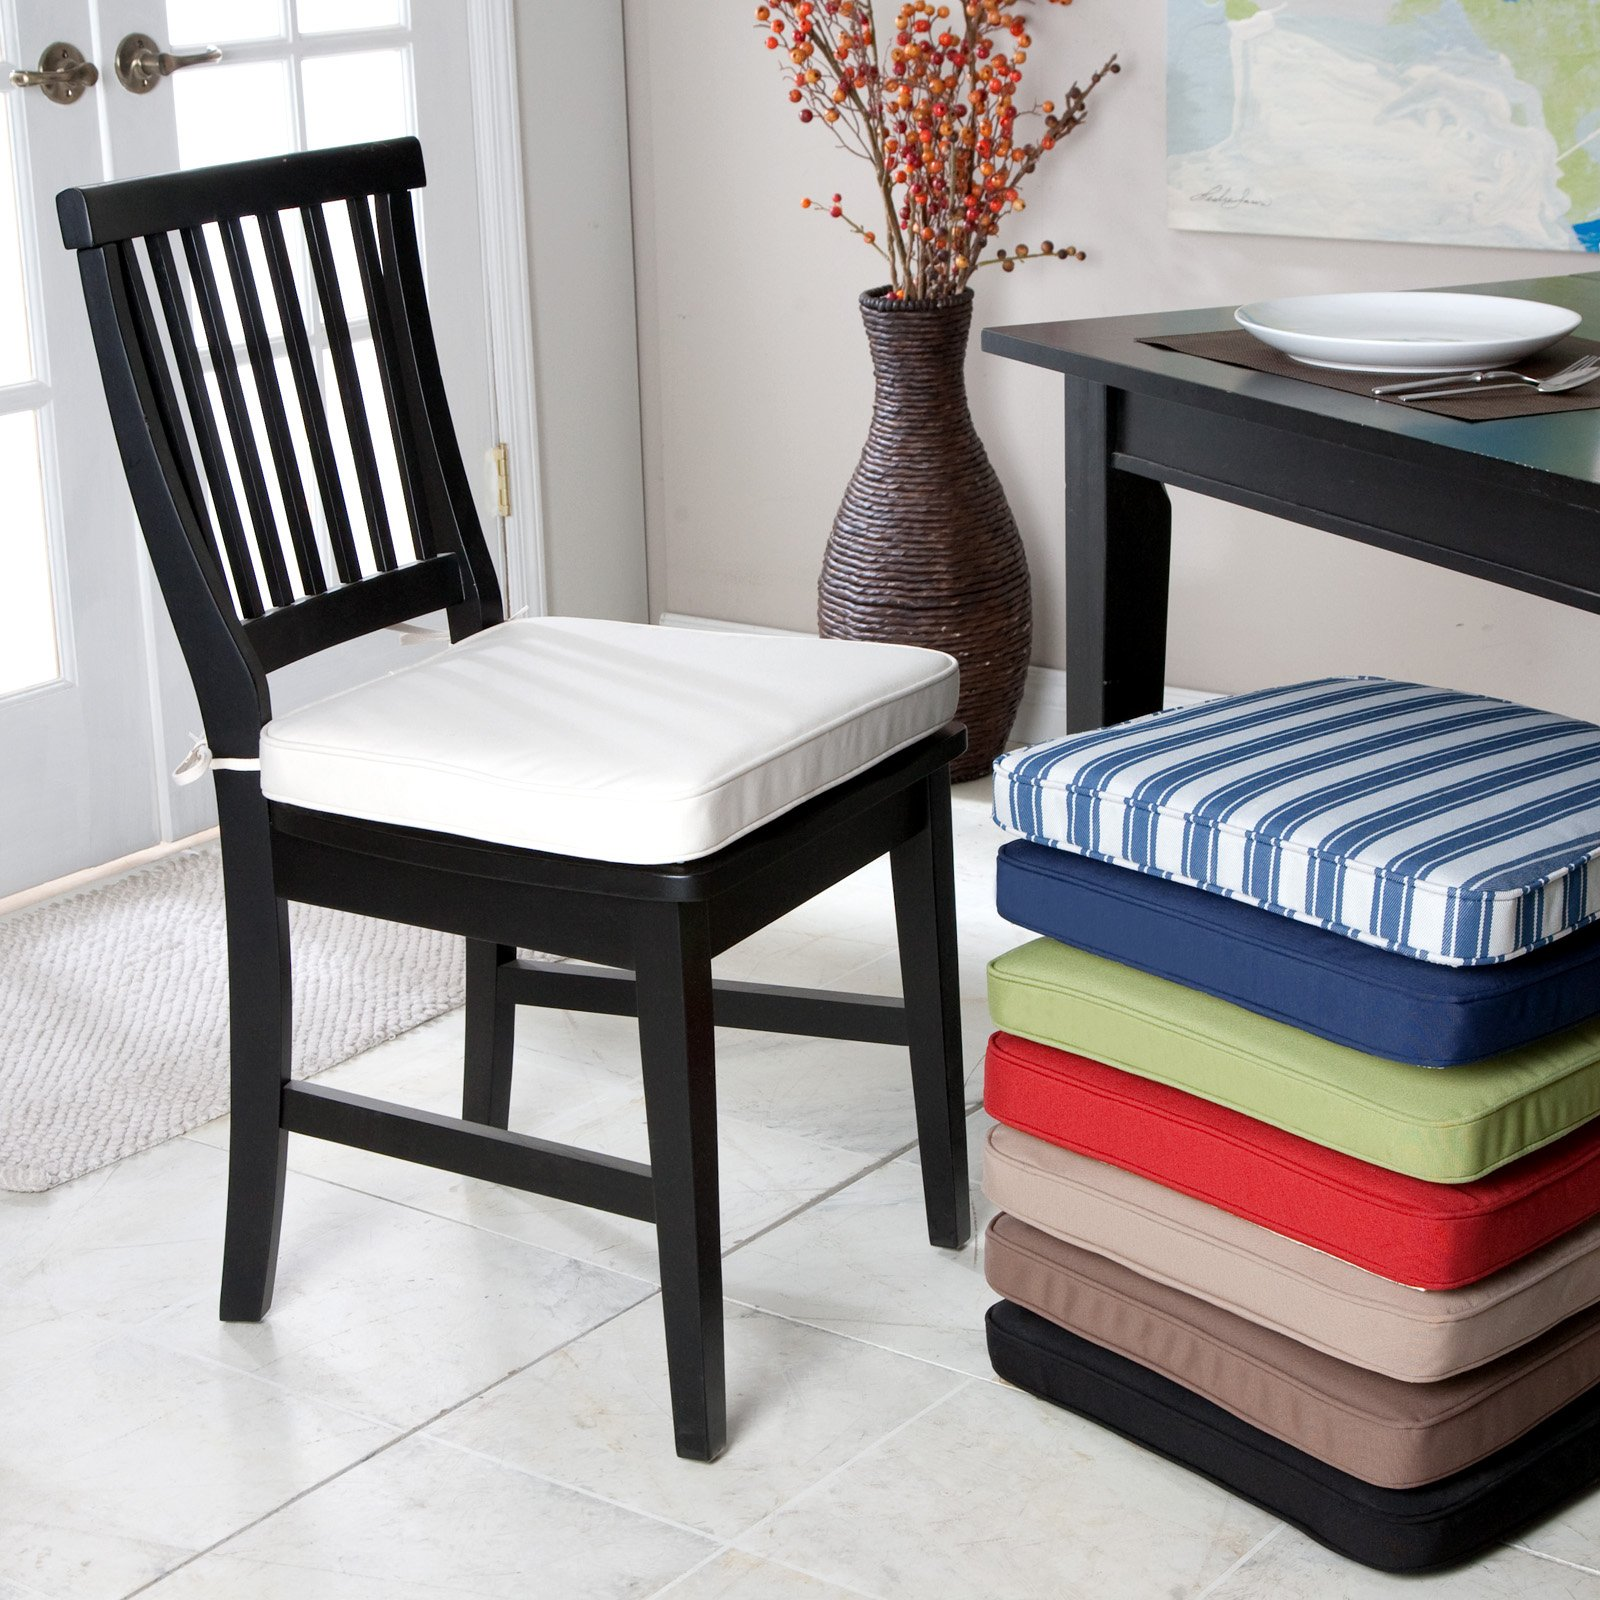 dining room chair cushions large and beautiful photos On how to make seat cushions for dining room chairs